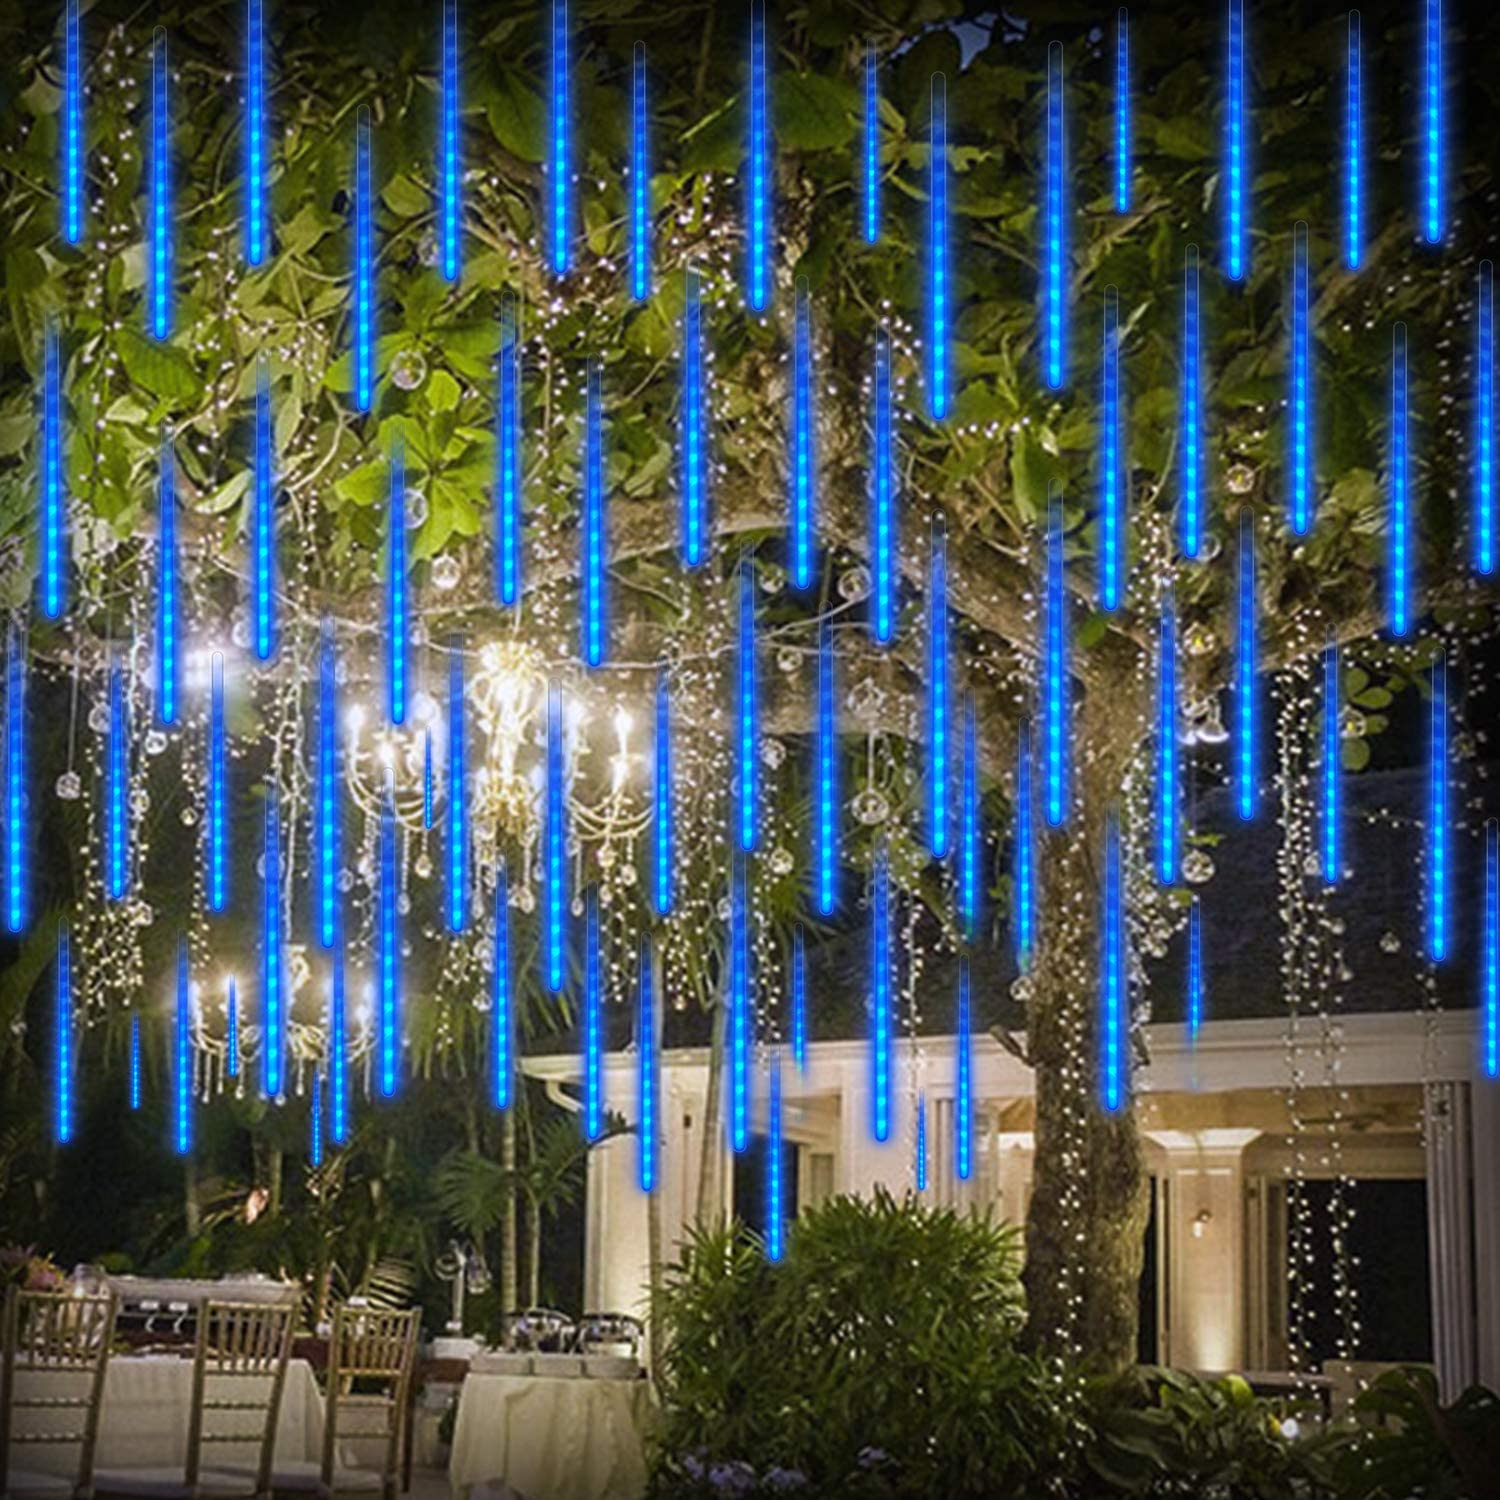 Meteor Shower Rain Lights LED Christmas Light 192 LEDs 11.8 inch 8 Tubes Waterproof Drop Icicle Snow Falling Raindrop Cascading Lights for Party Wedding Garden Christmas Tree Decoration, Blue